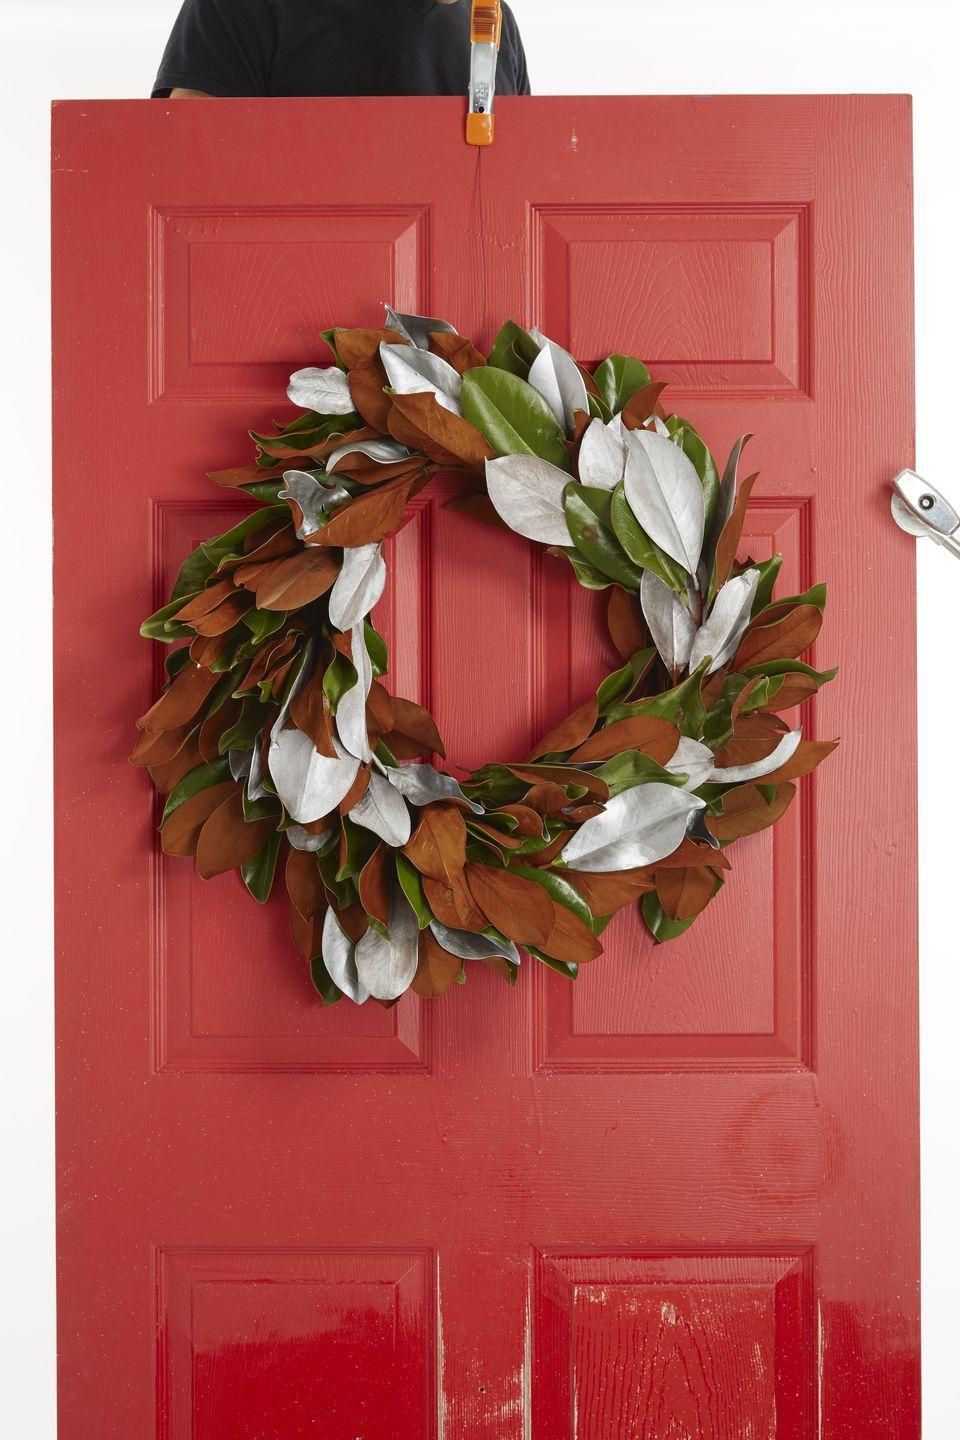 "<p>Scrap together some magnolia branches, a florist's foam wreath, silver acrylic paint, and a paintbrush. Soak the foam wreath in water for five minutes; cut leaves off the magnolia branches and stick them into the wreath, all pointing in the same direction. Paint select leaves silver or gold. </p><p><a class=""link rapid-noclick-resp"" href=""https://www.amazon.com/BD-Crafts-preserved-Magnolia-leaves/dp/B077WY25QW/?tag=syn-yahoo-20&ascsubtag=%5Bartid%7C10055.g.2361%5Bsrc%7Cyahoo-us"" rel=""nofollow noopener"" target=""_blank"" data-ylk=""slk:SHOP FAUX MAGNOLIA LEAVES"">SHOP FAUX MAGNOLIA LEAVES</a></p>"